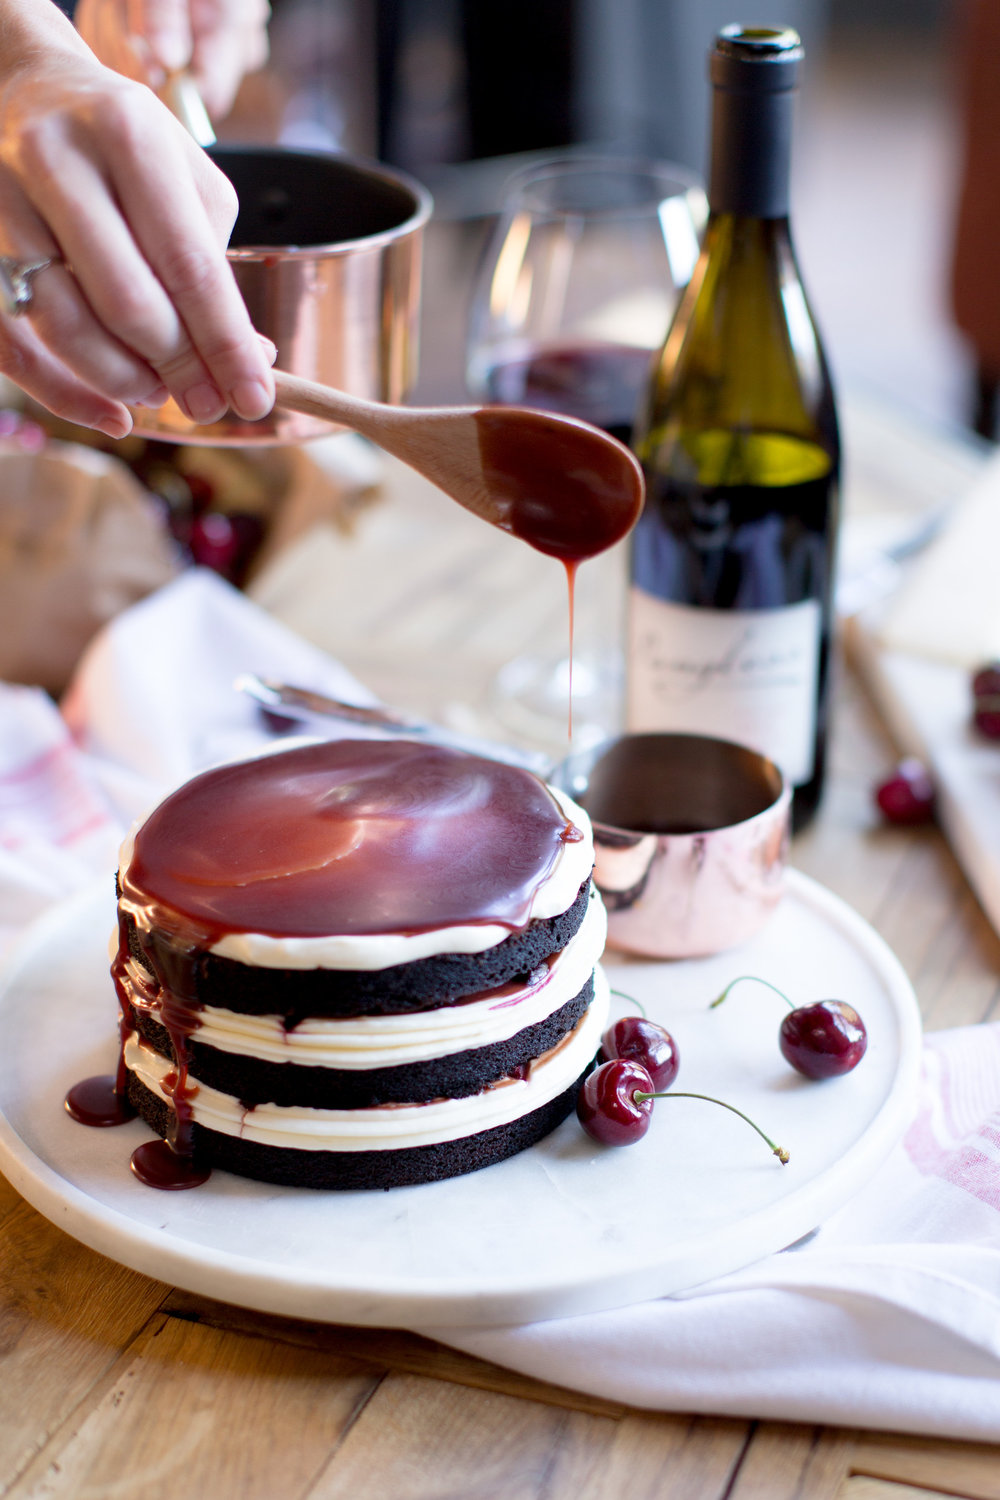 Cake Bloom's Pangloss Cellars Pinot Noir Caramel Sauce on The School of Styling | asavvylifestyle.com / portraits to the people